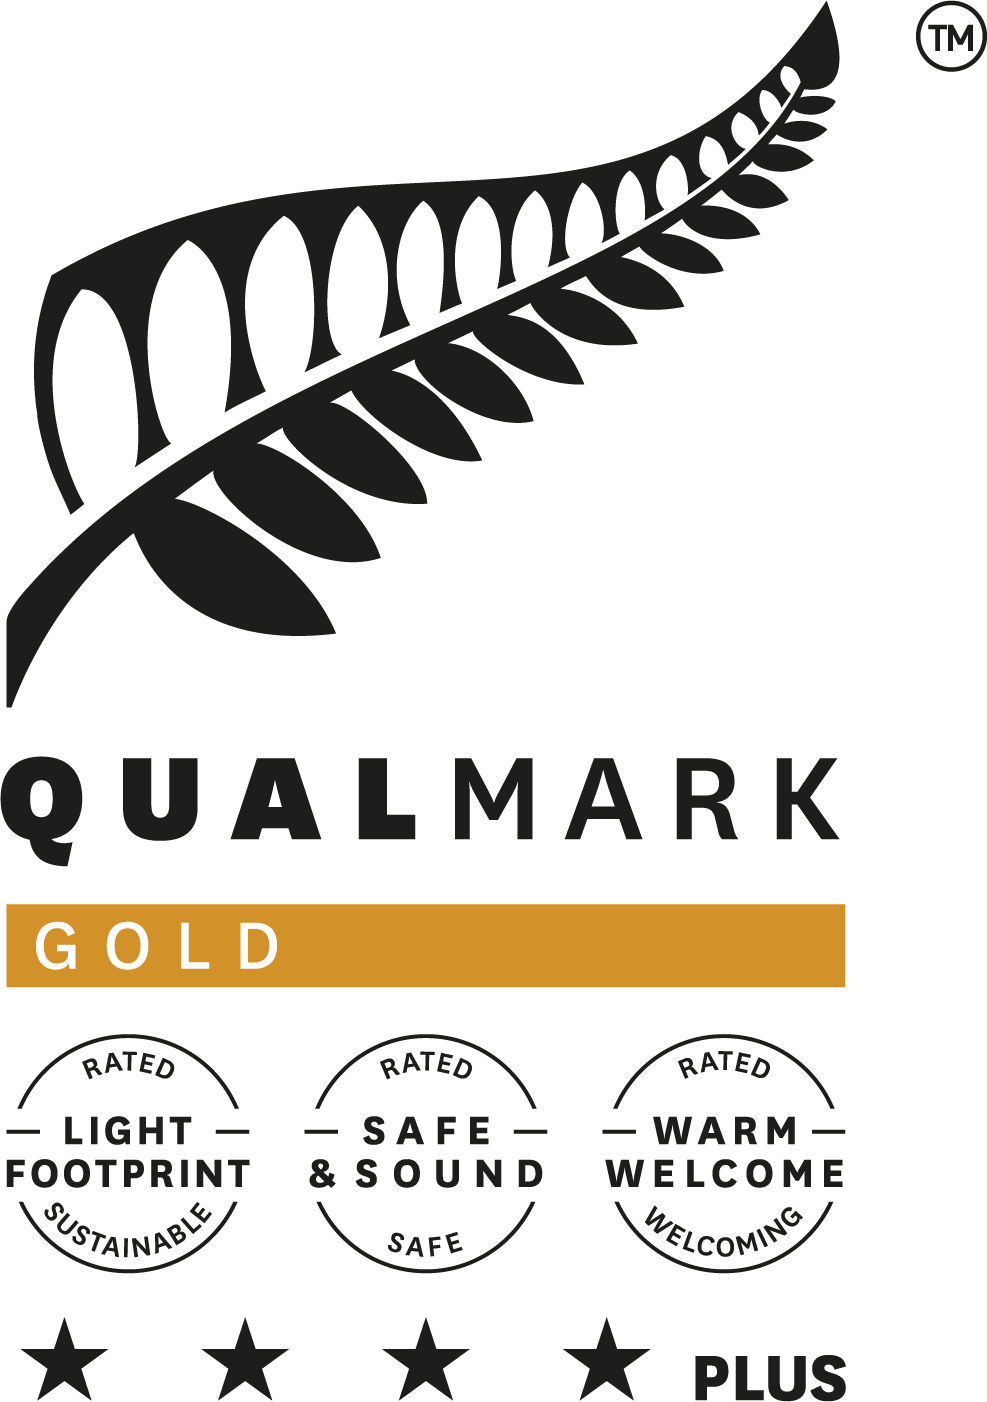 qualmark 4 star plus gold the lord clyde